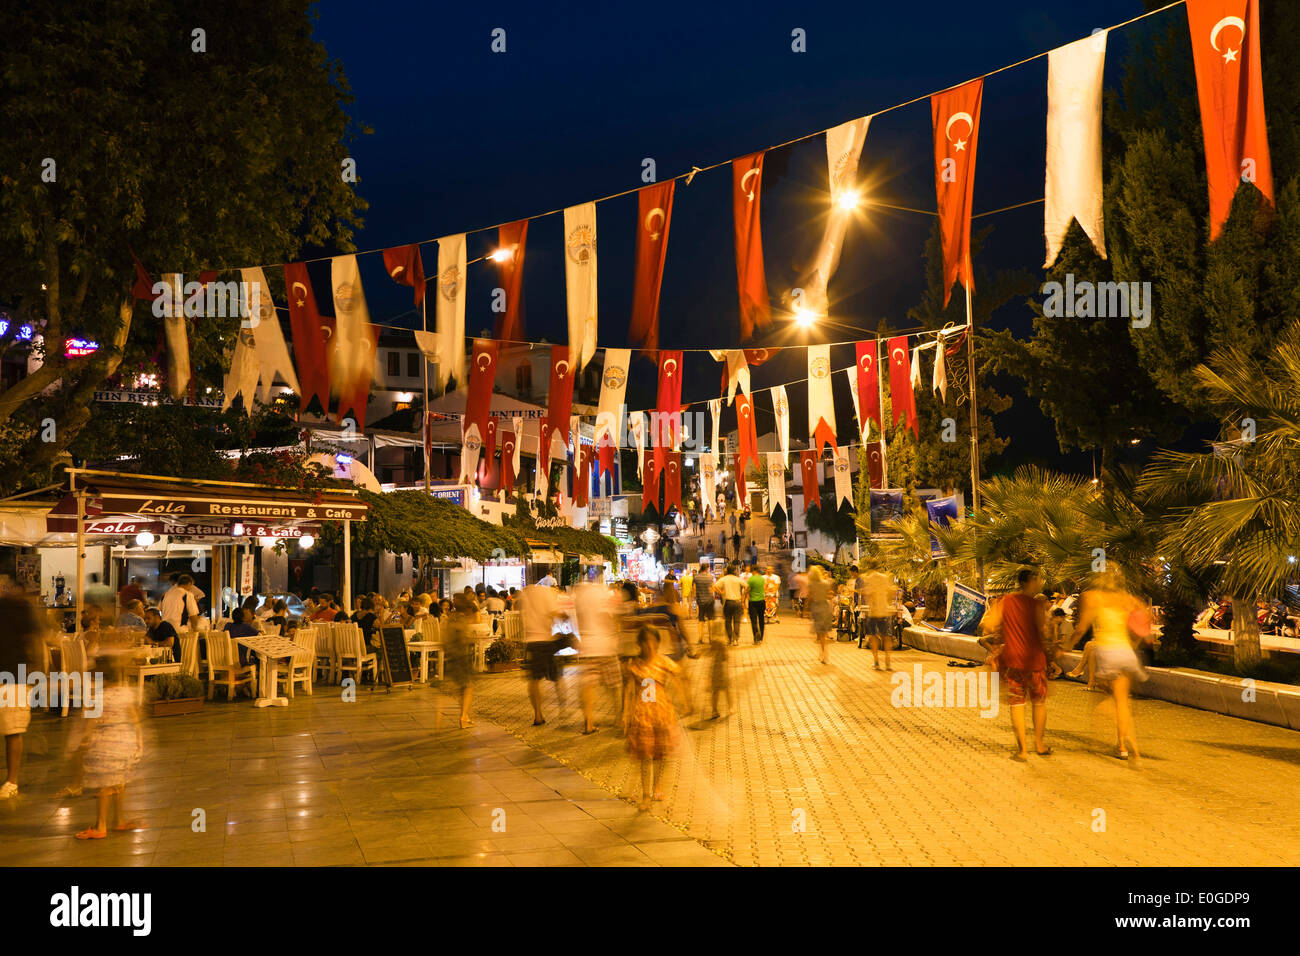 Kas at night, nightlife, lycian coast, Lycia, Mediterranean Sea, Turkey, Asia - Stock Image